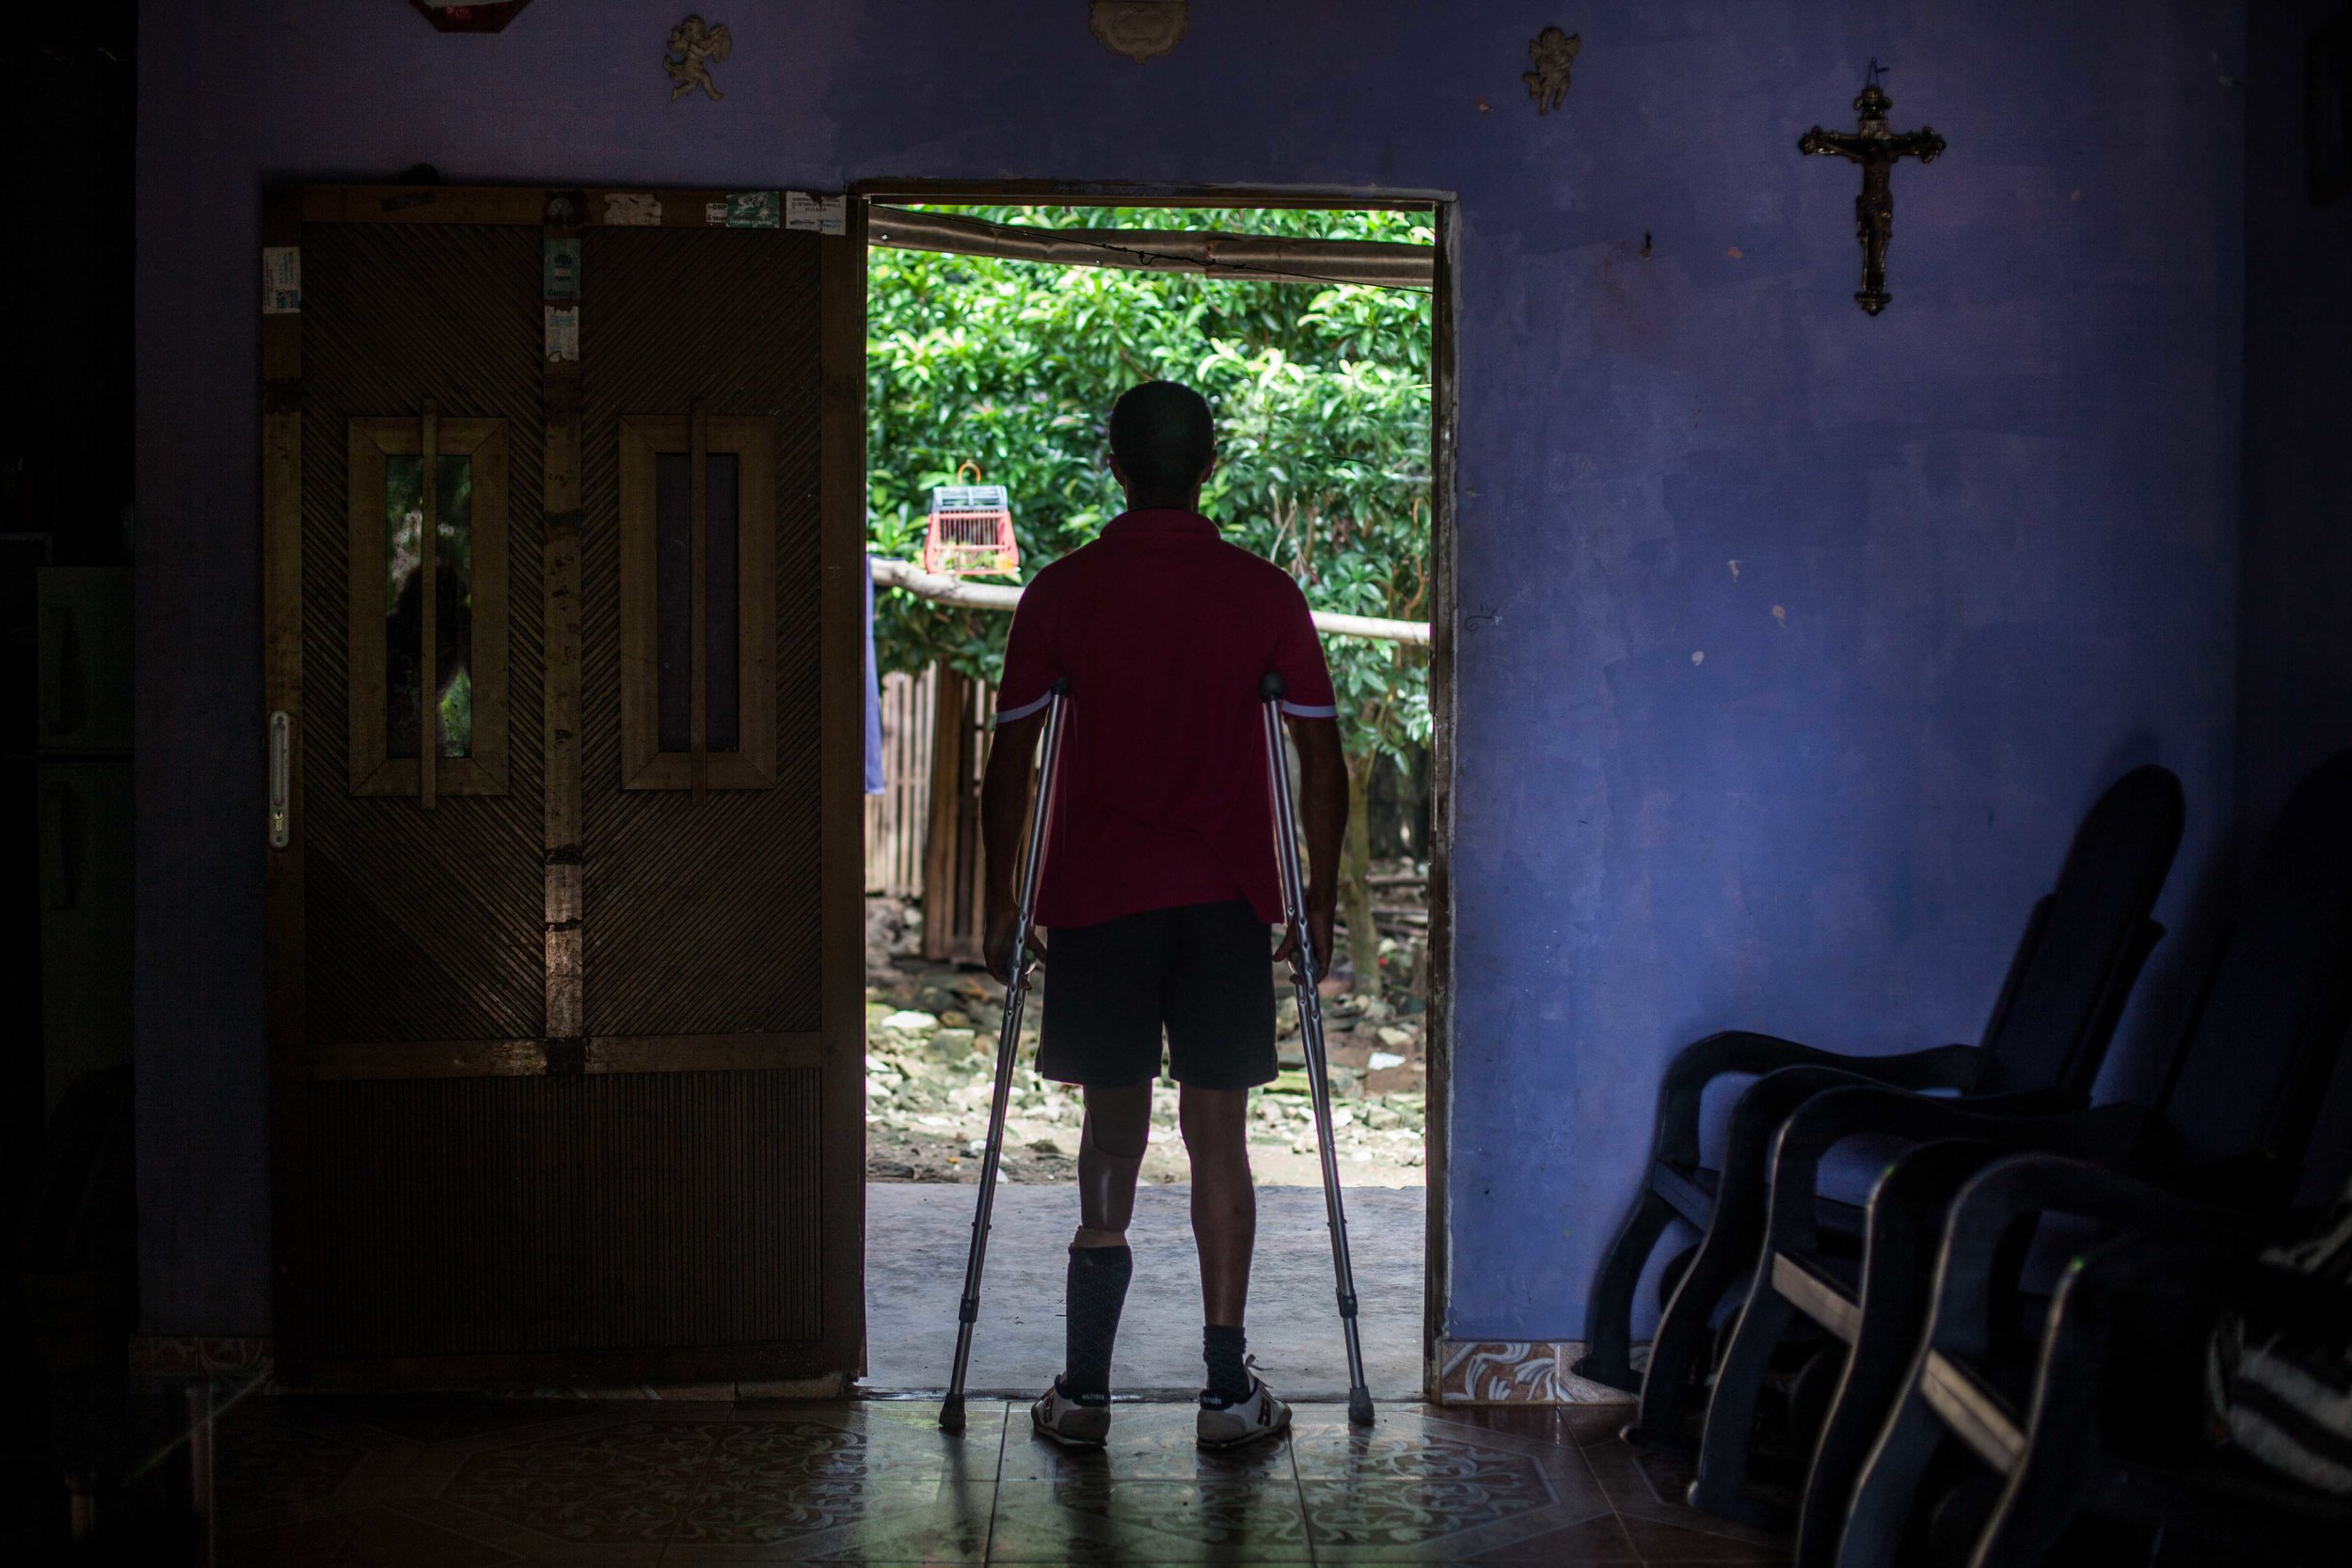 After 20 years since Ismael Mena suffered mutilation of his left leg after stepping on a land mine, tears still well up from his eyes when he recalls that day. Ismael says that he has forgiven and feels peacefully thanks to the support of God and his wife. (San Antero, Colombia, 2016).